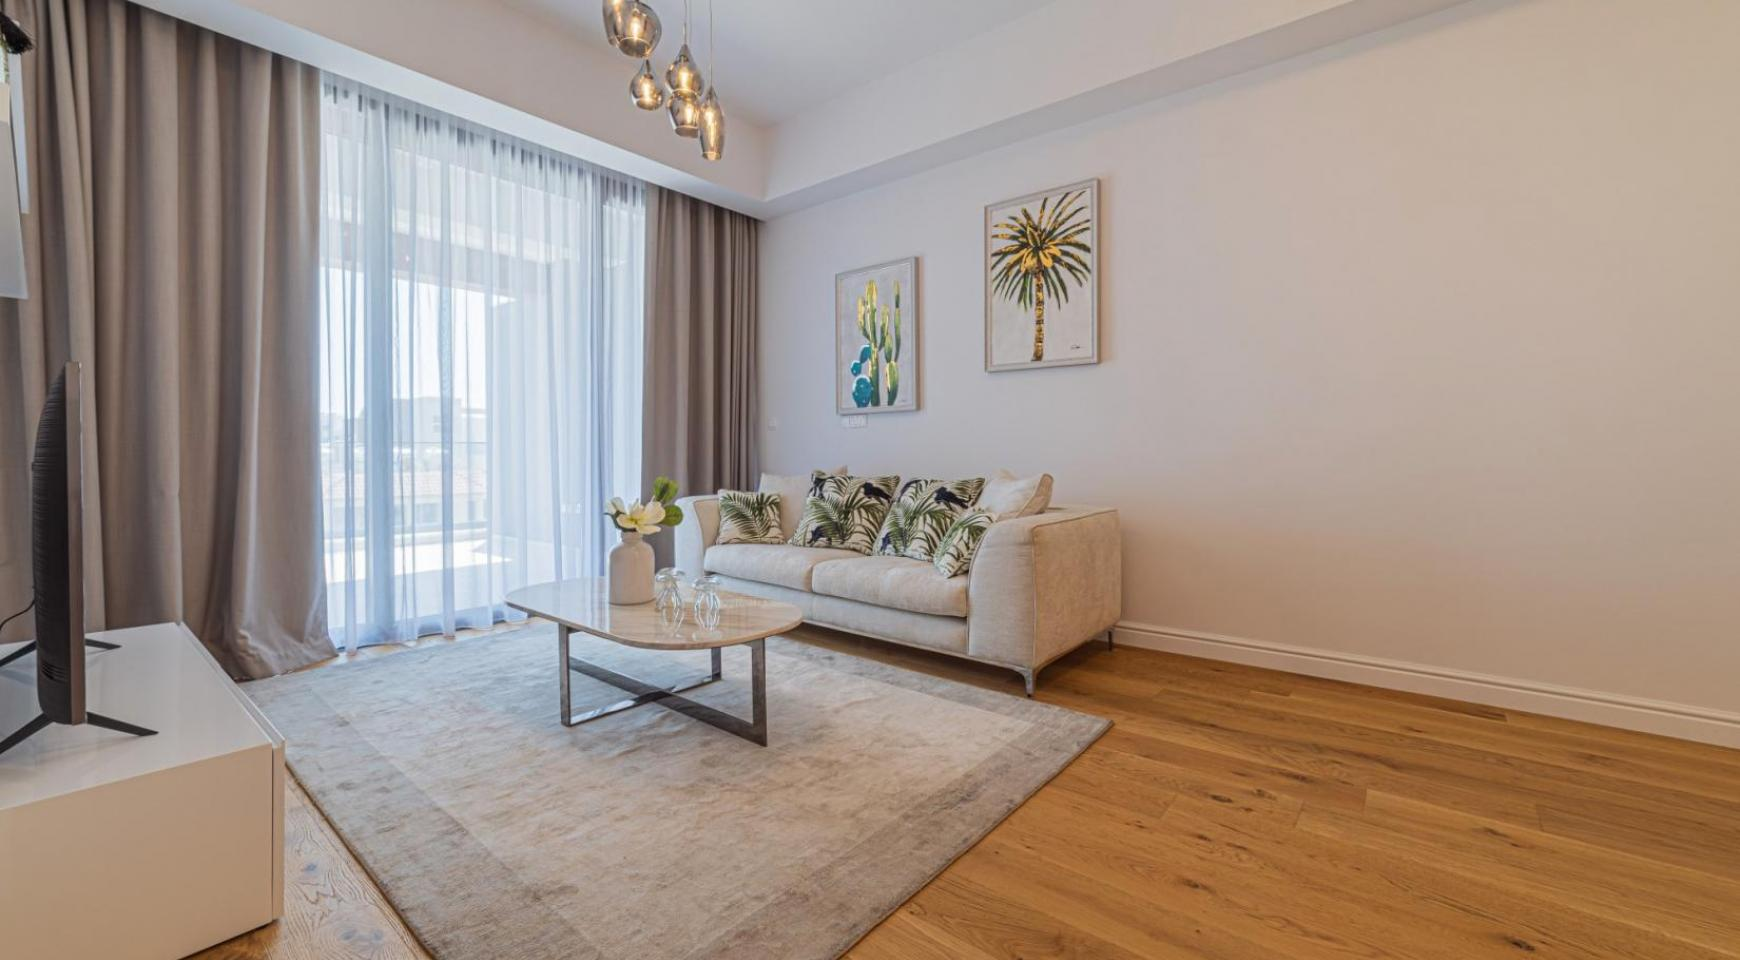 Hortensia Residence, Apt. 302. 2 Bedroom Apartment within a New Complex near the Sea  - 49